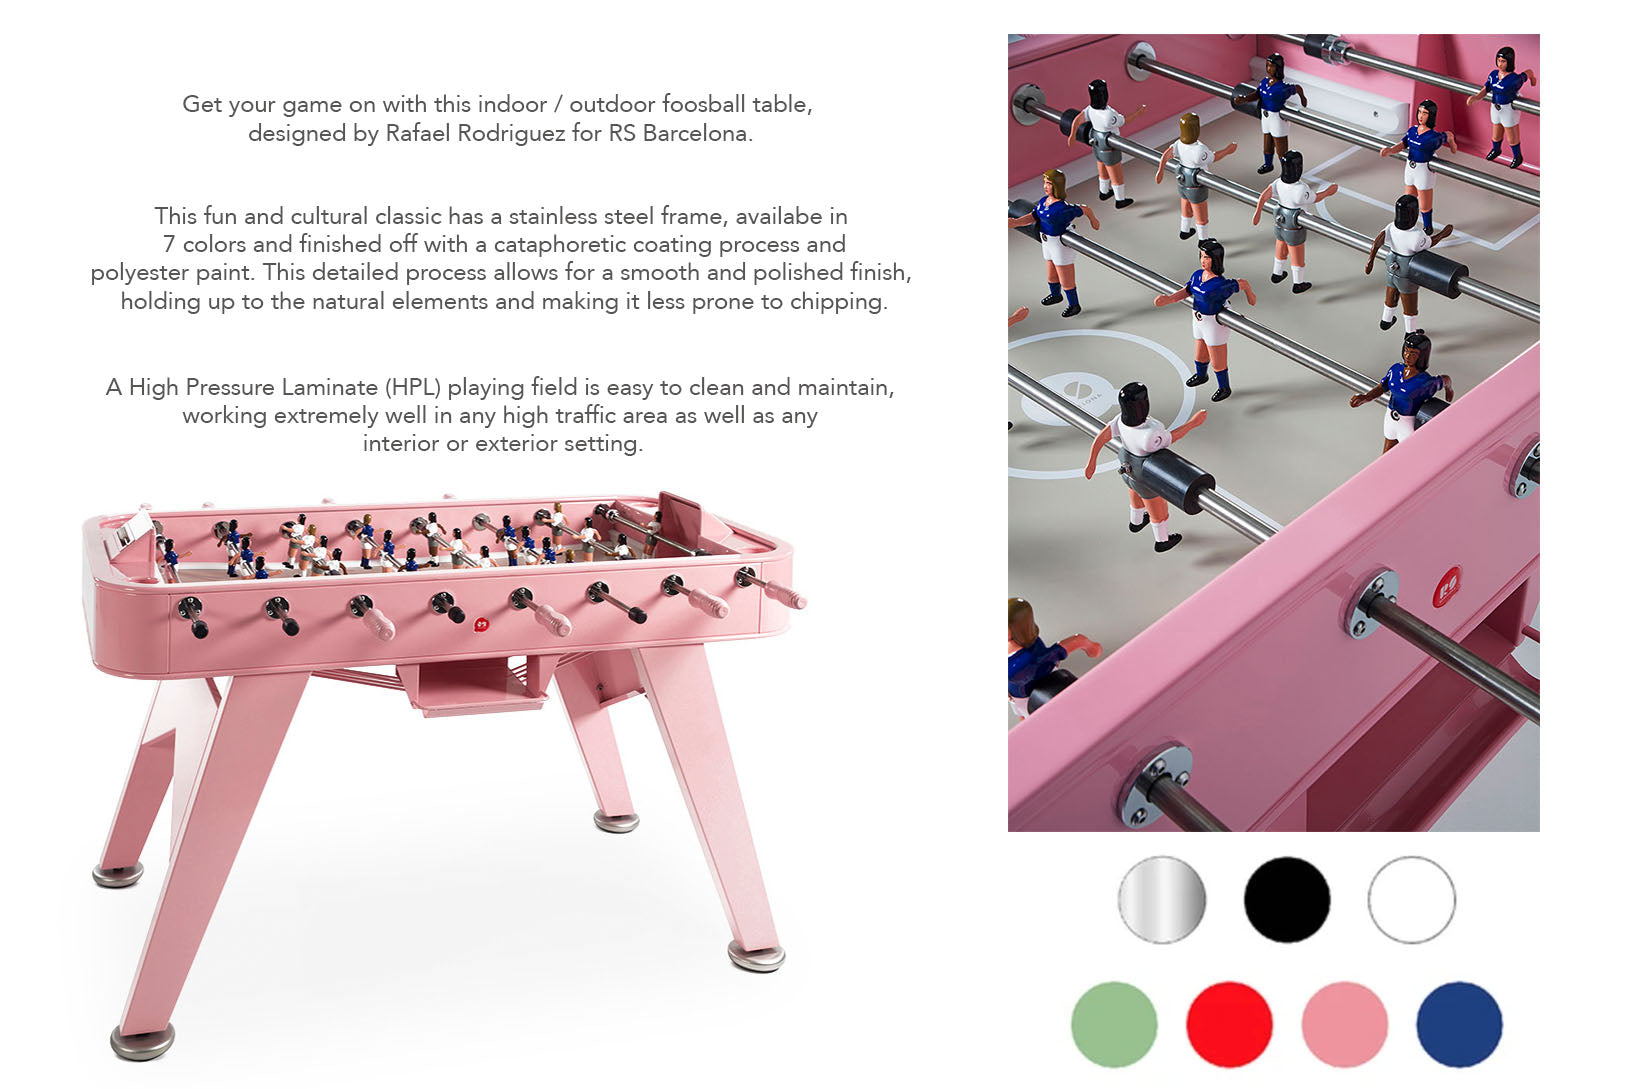 RS Barcelona Foosball tables